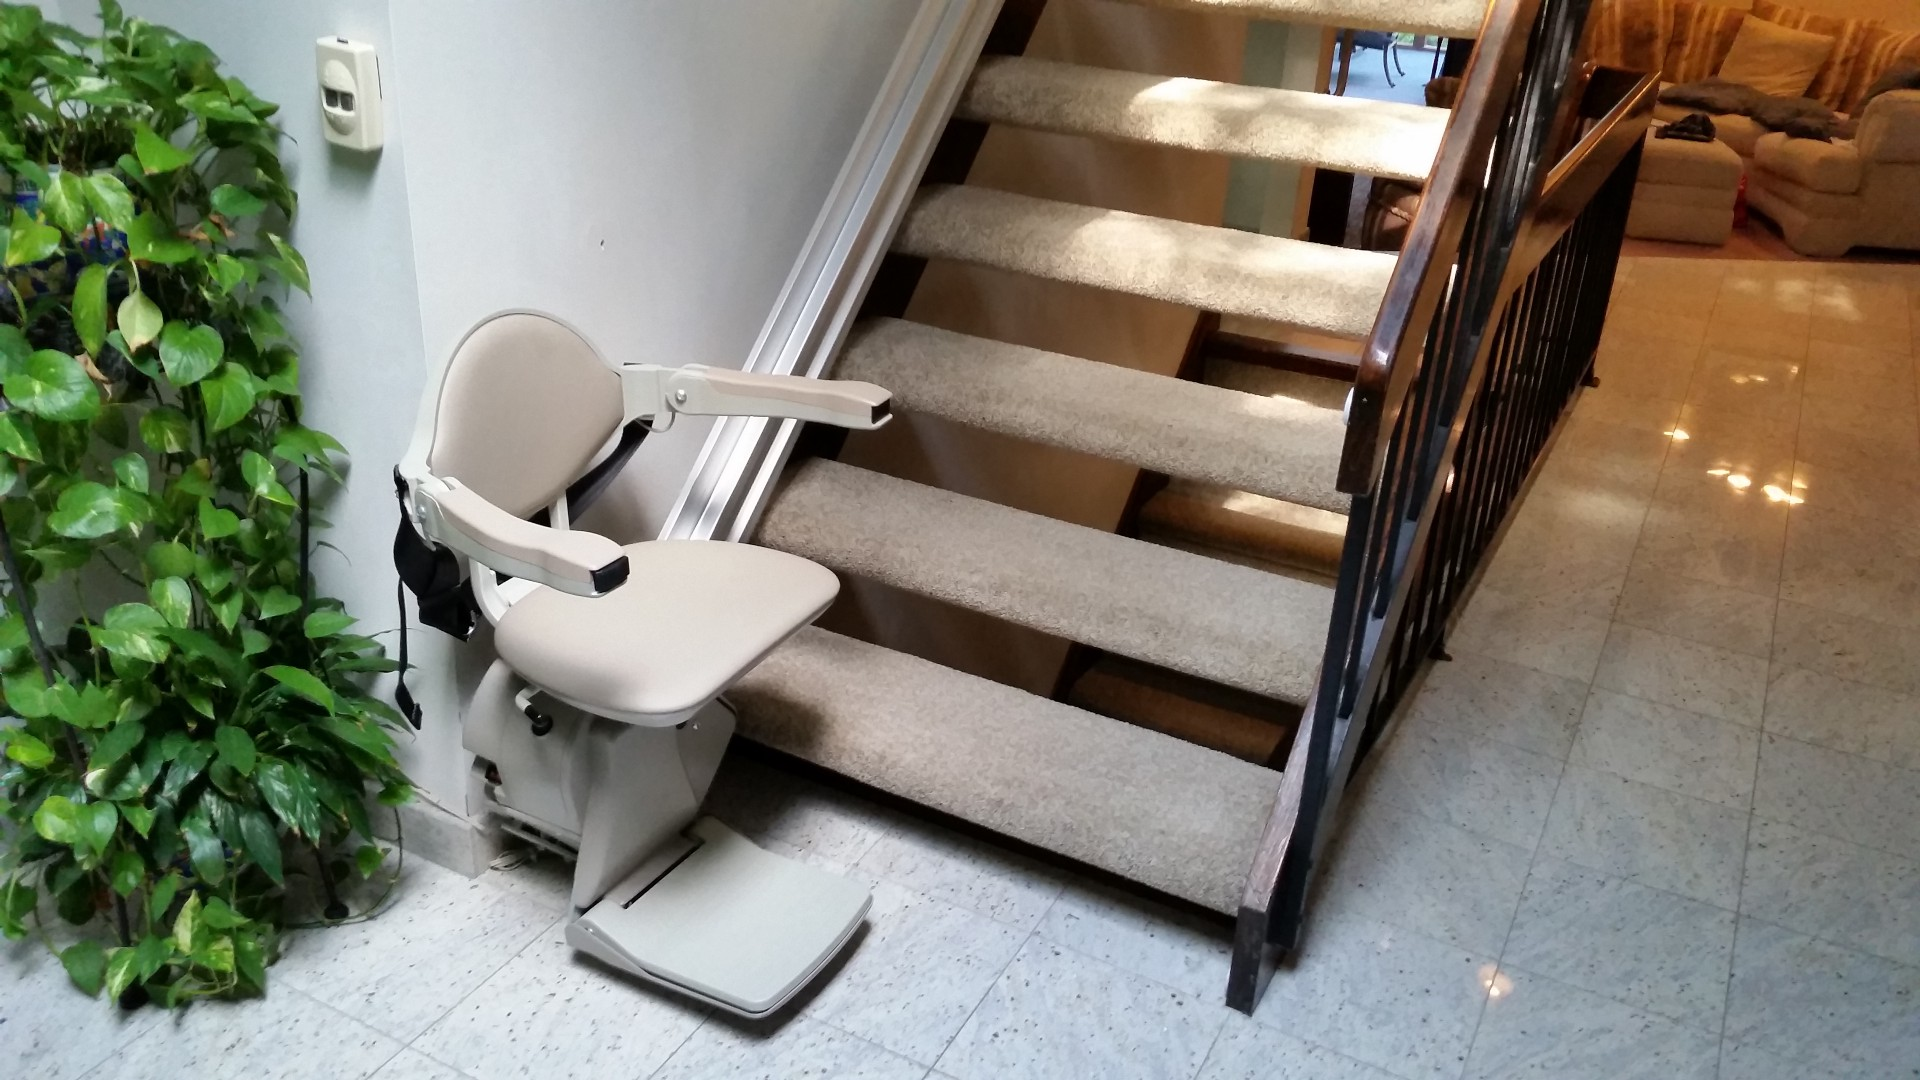 electric stair chair for baby shower troubleshooting a bruno elan stairlift sre 3000 ryan penn medium